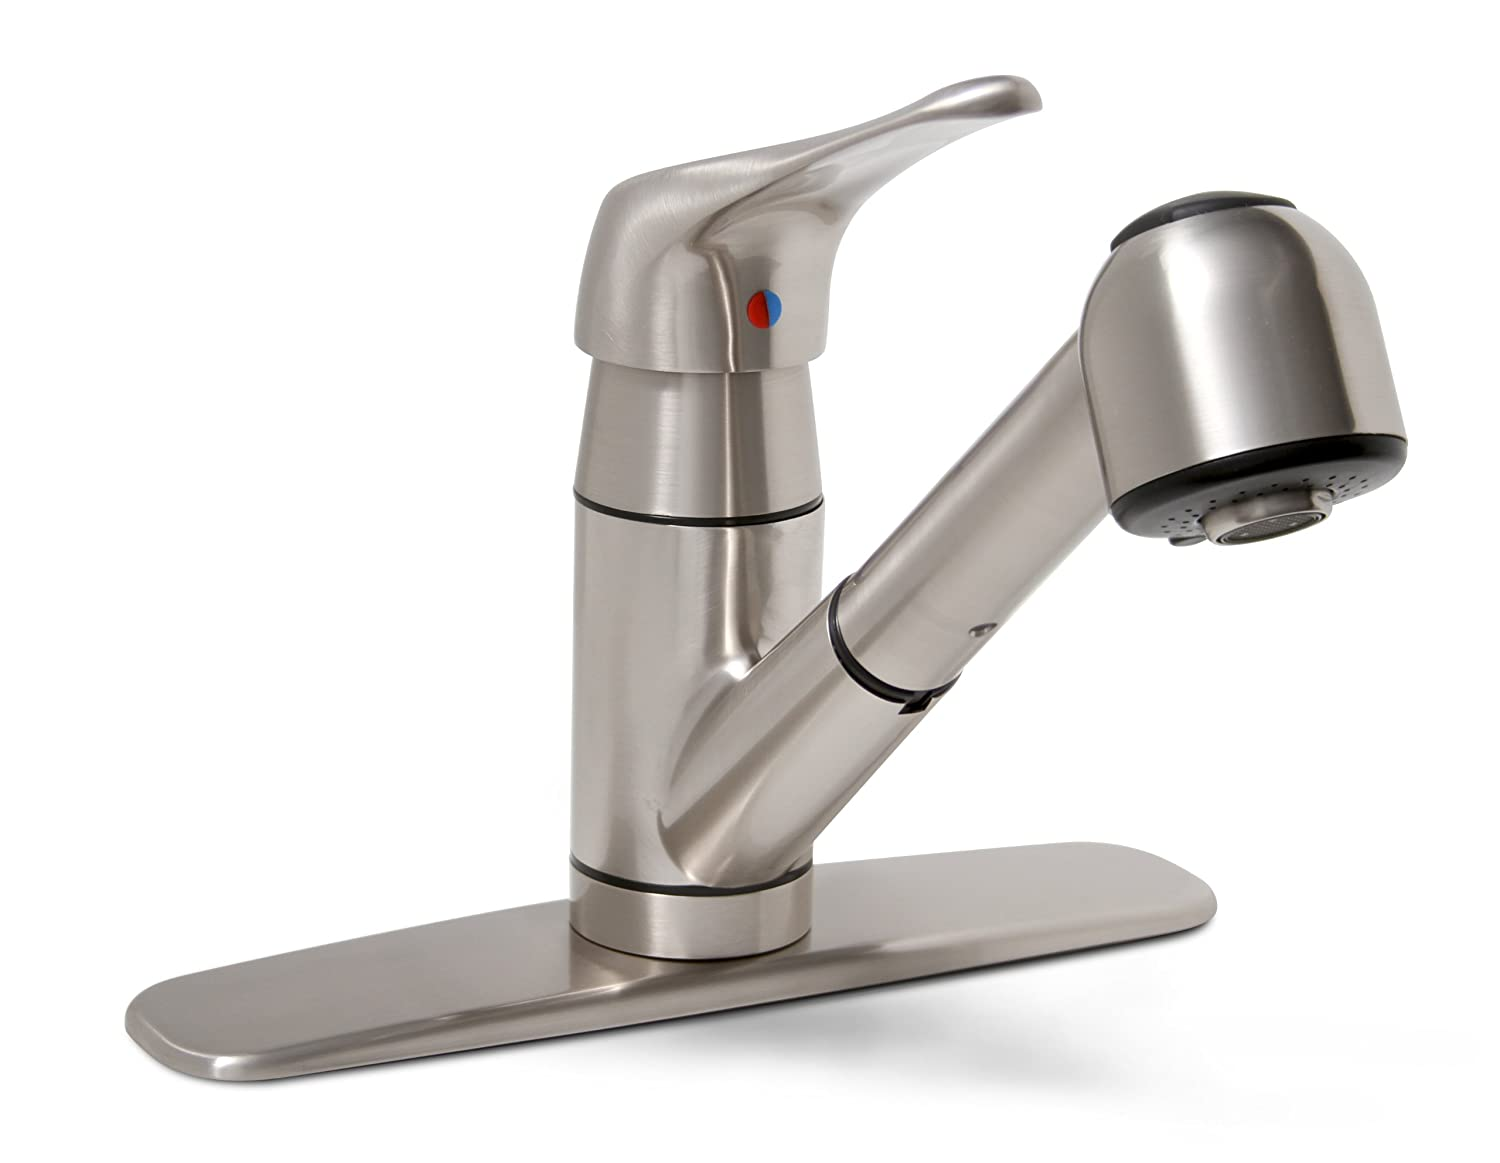 Kitchen Pull Out Faucet Best Pull Out Kitchen Faucets 2015 Best Kitchen Faucets